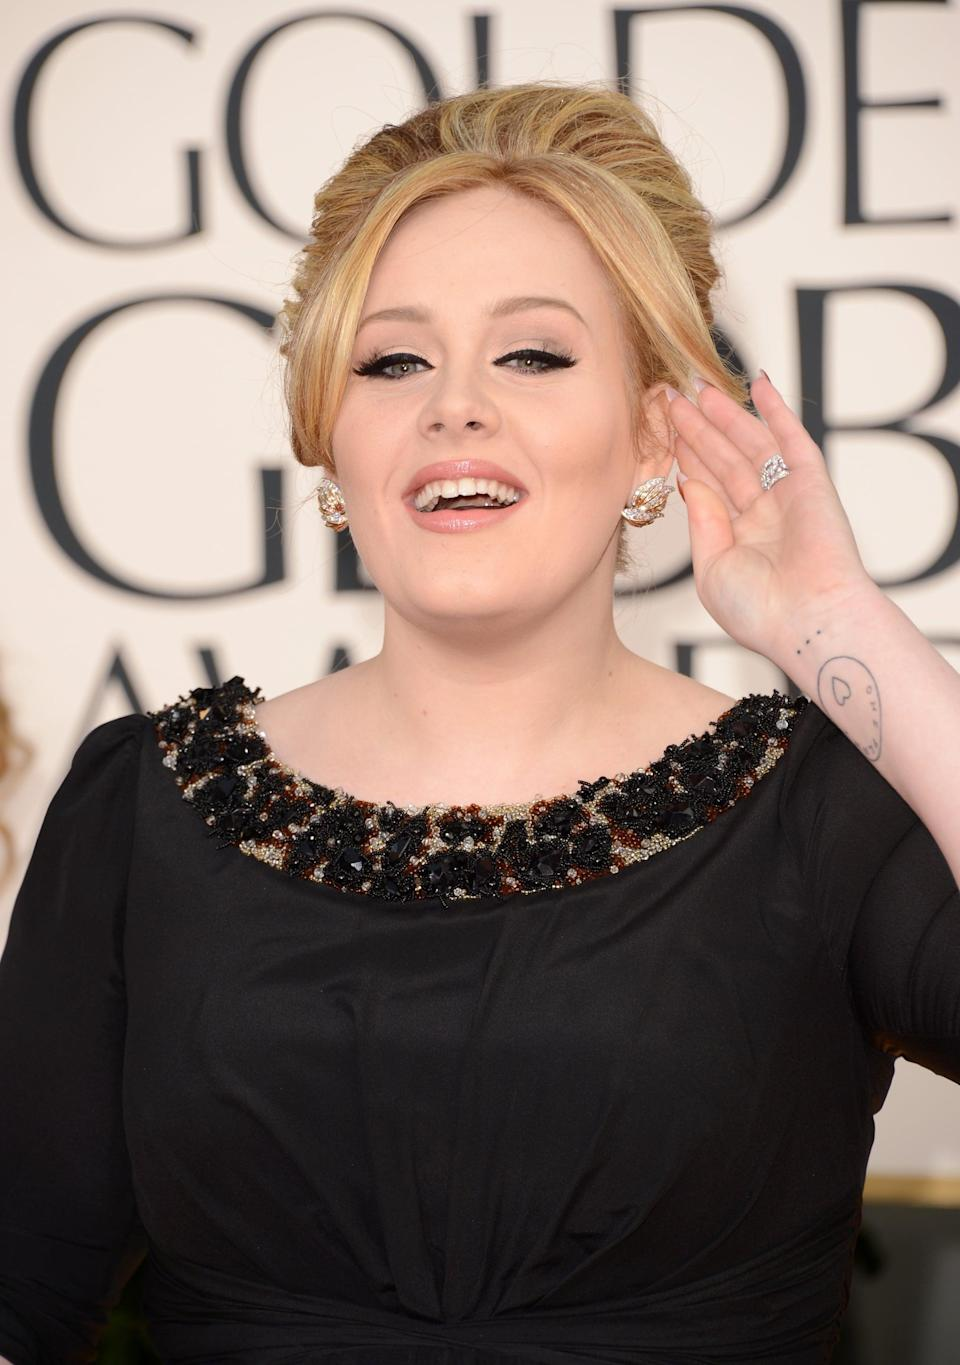 """<p>On her right wrist, the singer has a tattoo of a coin that reads """"One Penny,"""" honor of her mother whose name is Penny Adkins. Below the coin is an ellipsis which, according to <a href=""""https://bodyartguru.com/adele-tattoos/"""" class=""""link rapid-noclick-resp"""" rel=""""nofollow noopener"""" target=""""_blank"""" data-ylk=""""slk:Body Art Guru"""">Body Art Guru</a>, she got to match Civil Wars singer Joy Williams.</p>"""